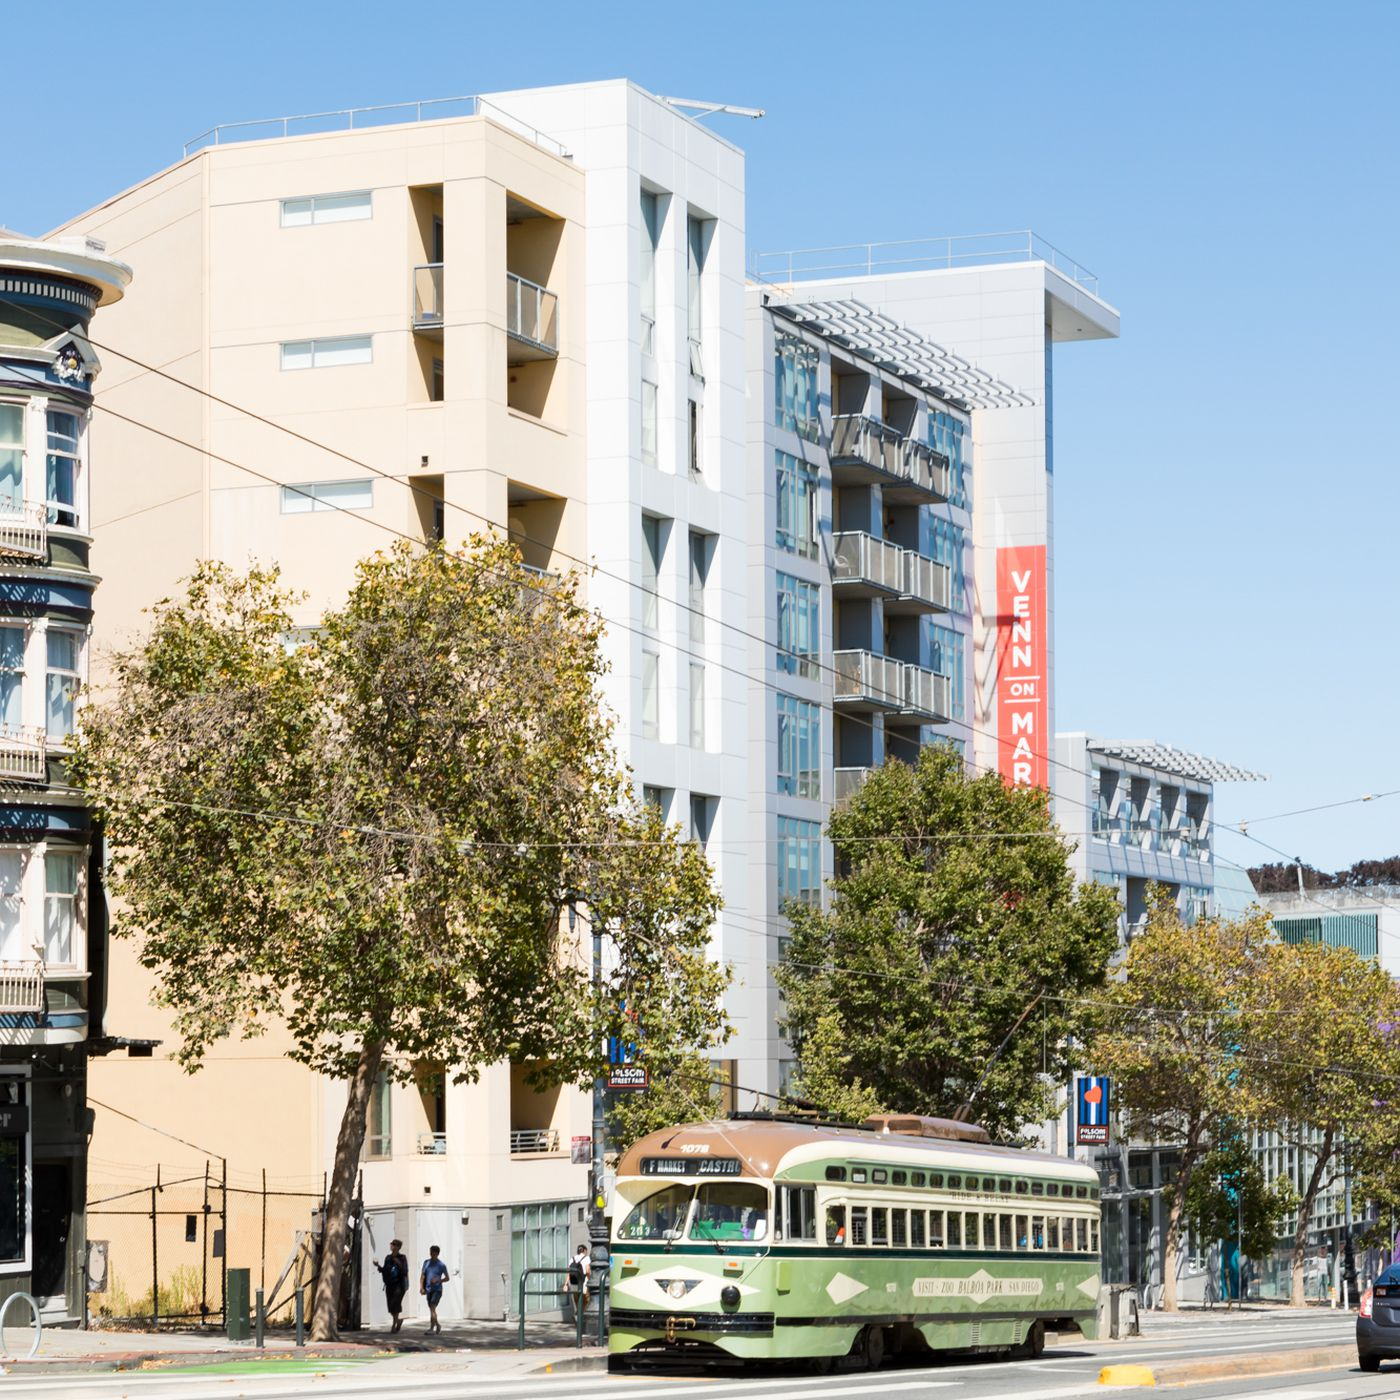 Thee ultimate guide to renting in San Francisco - Curbed SF